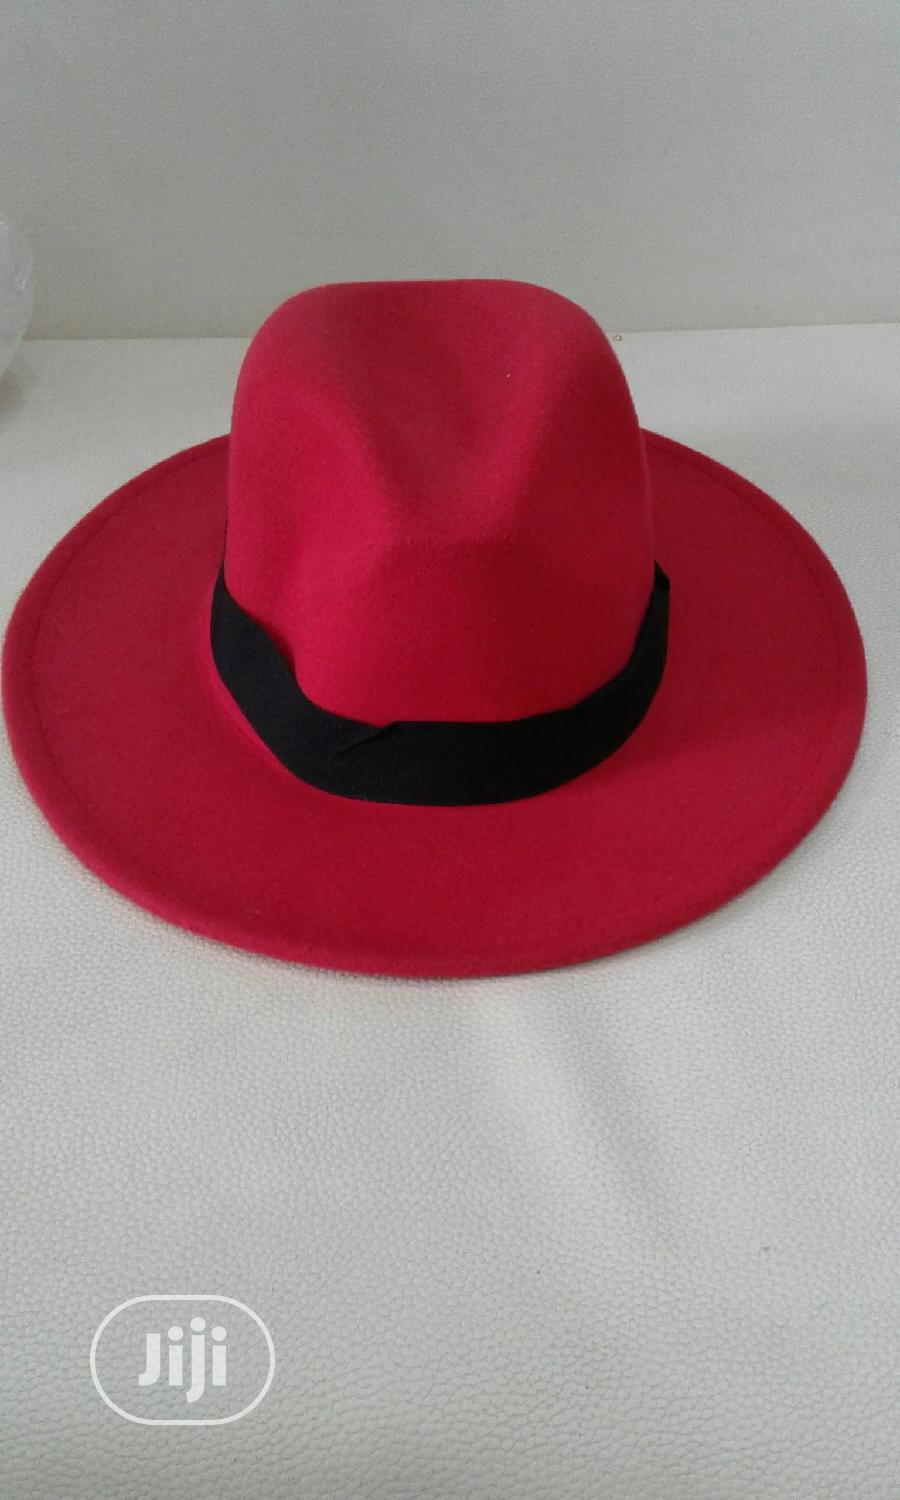 Fashion Hat | Clothing Accessories for sale in Amuwo-Odofin, Lagos State, Nigeria